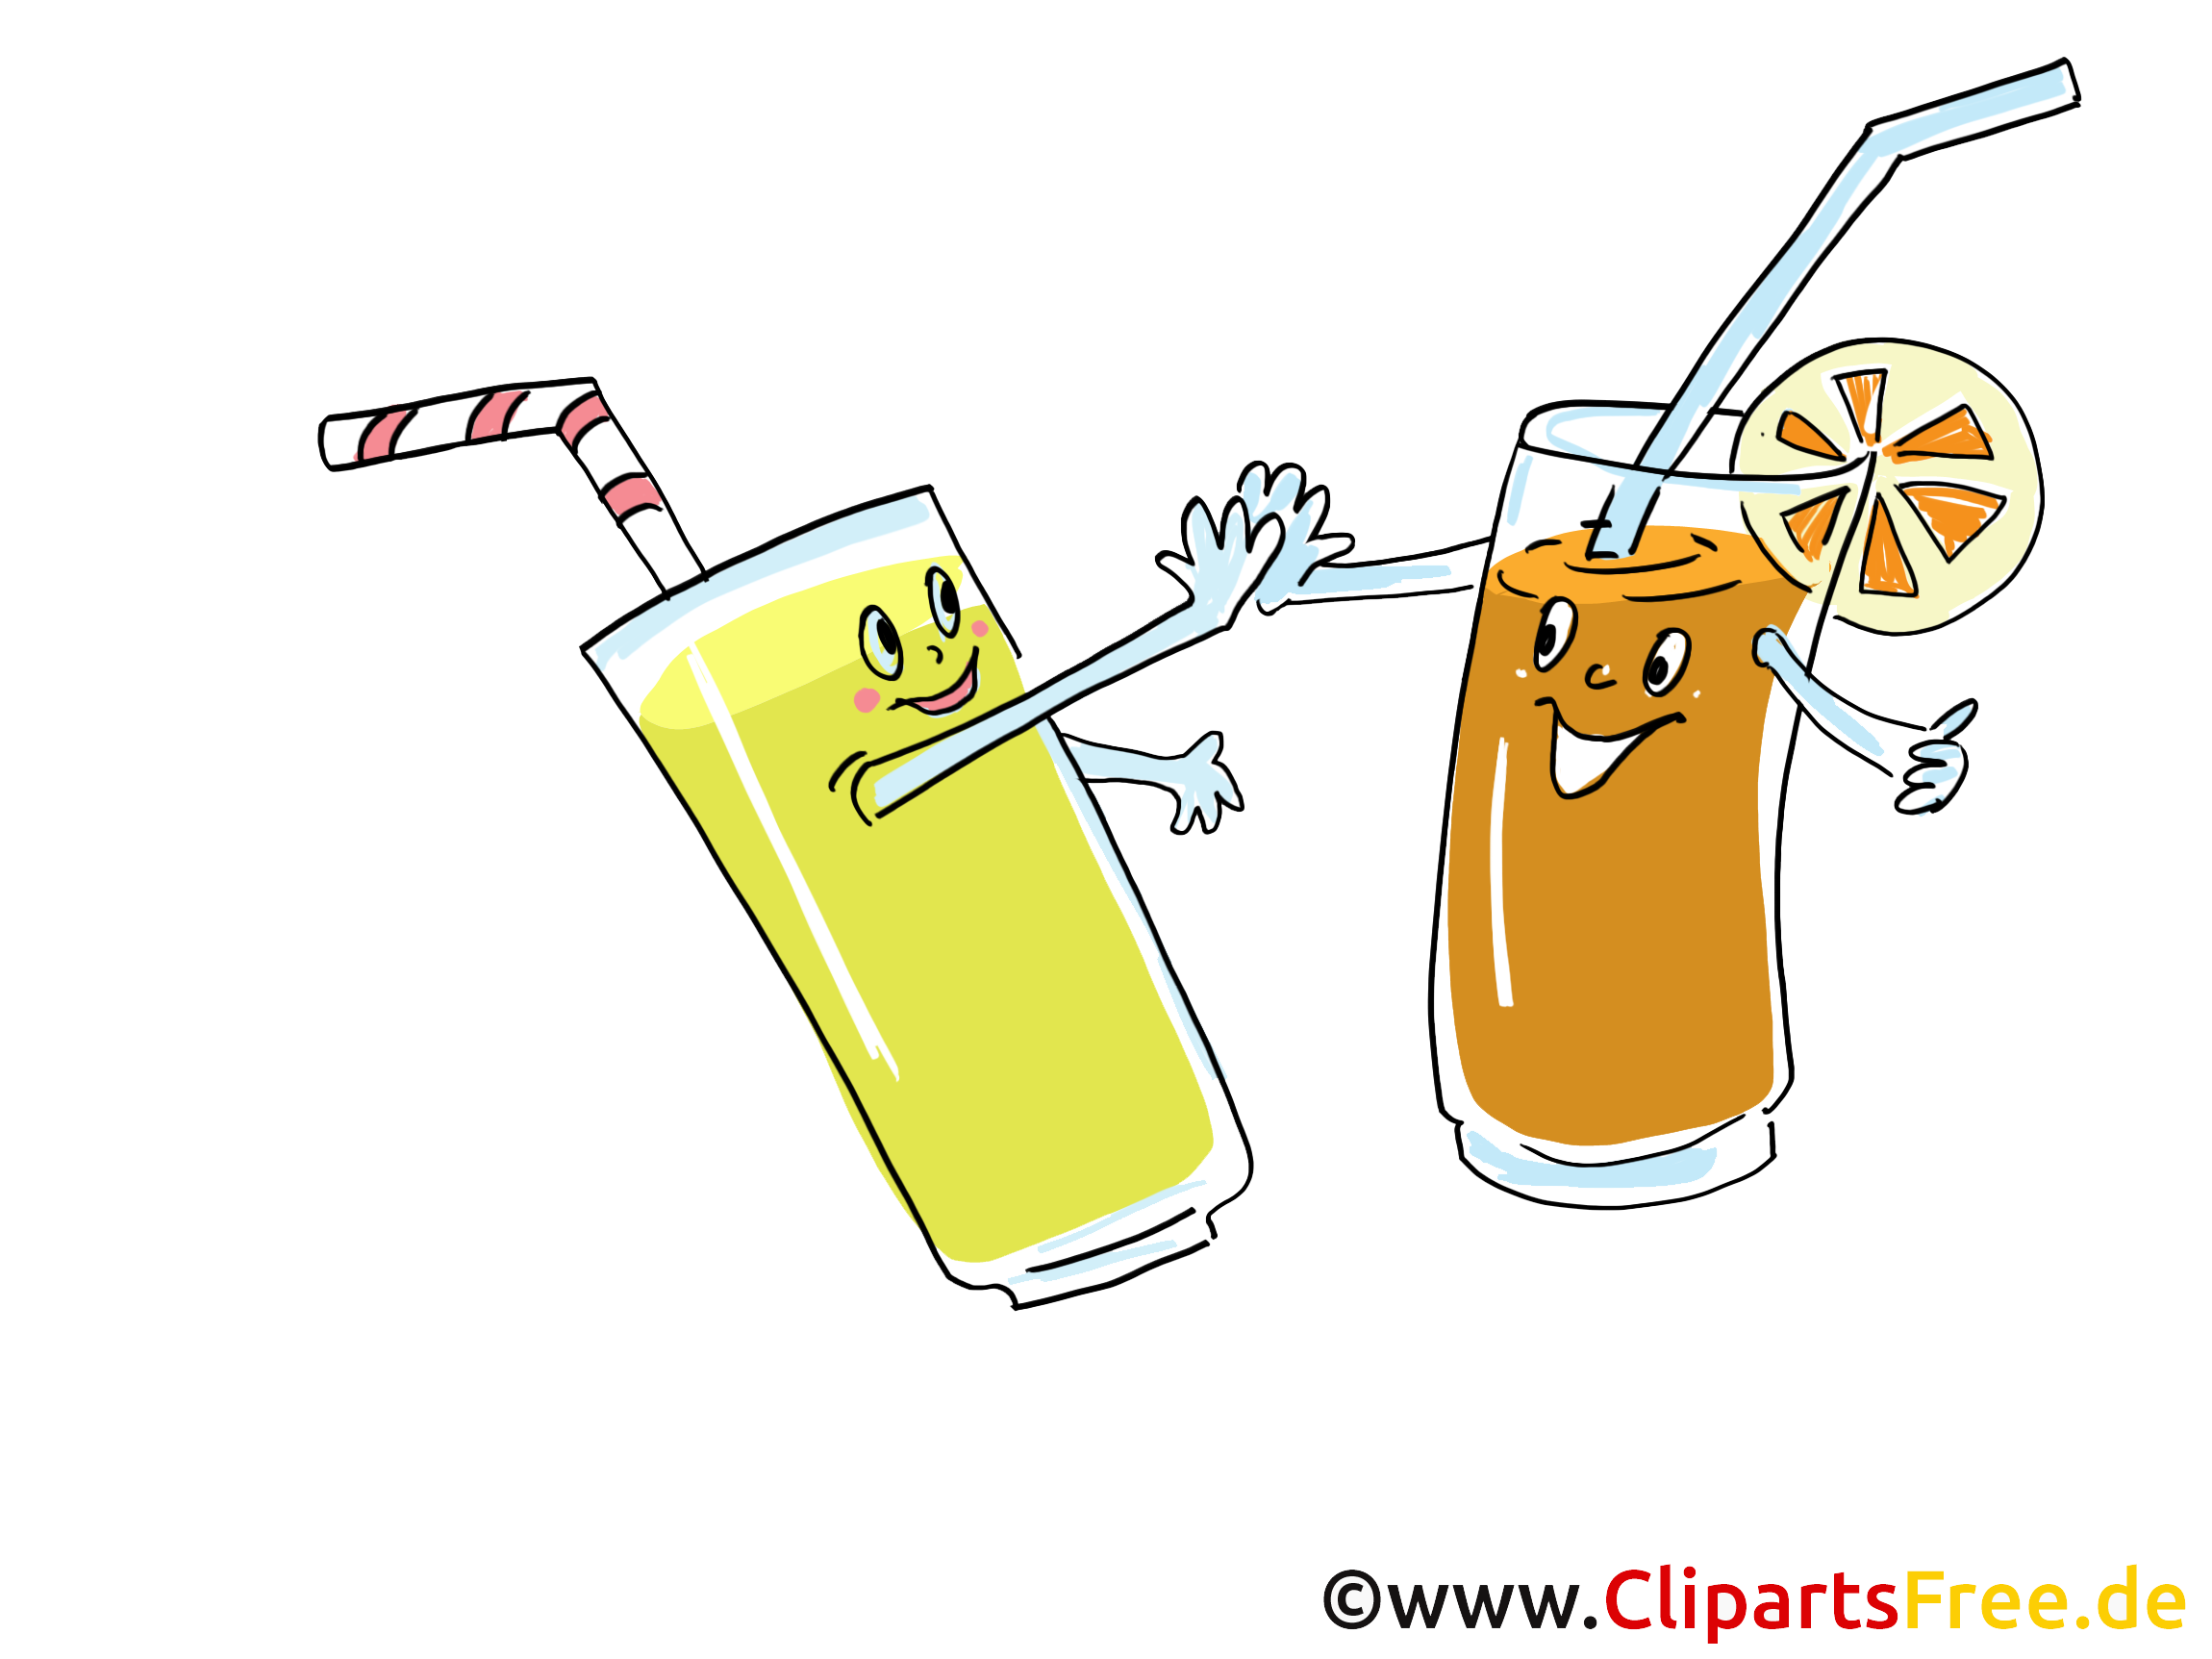 Cocktails illustration à télécharger gratuite